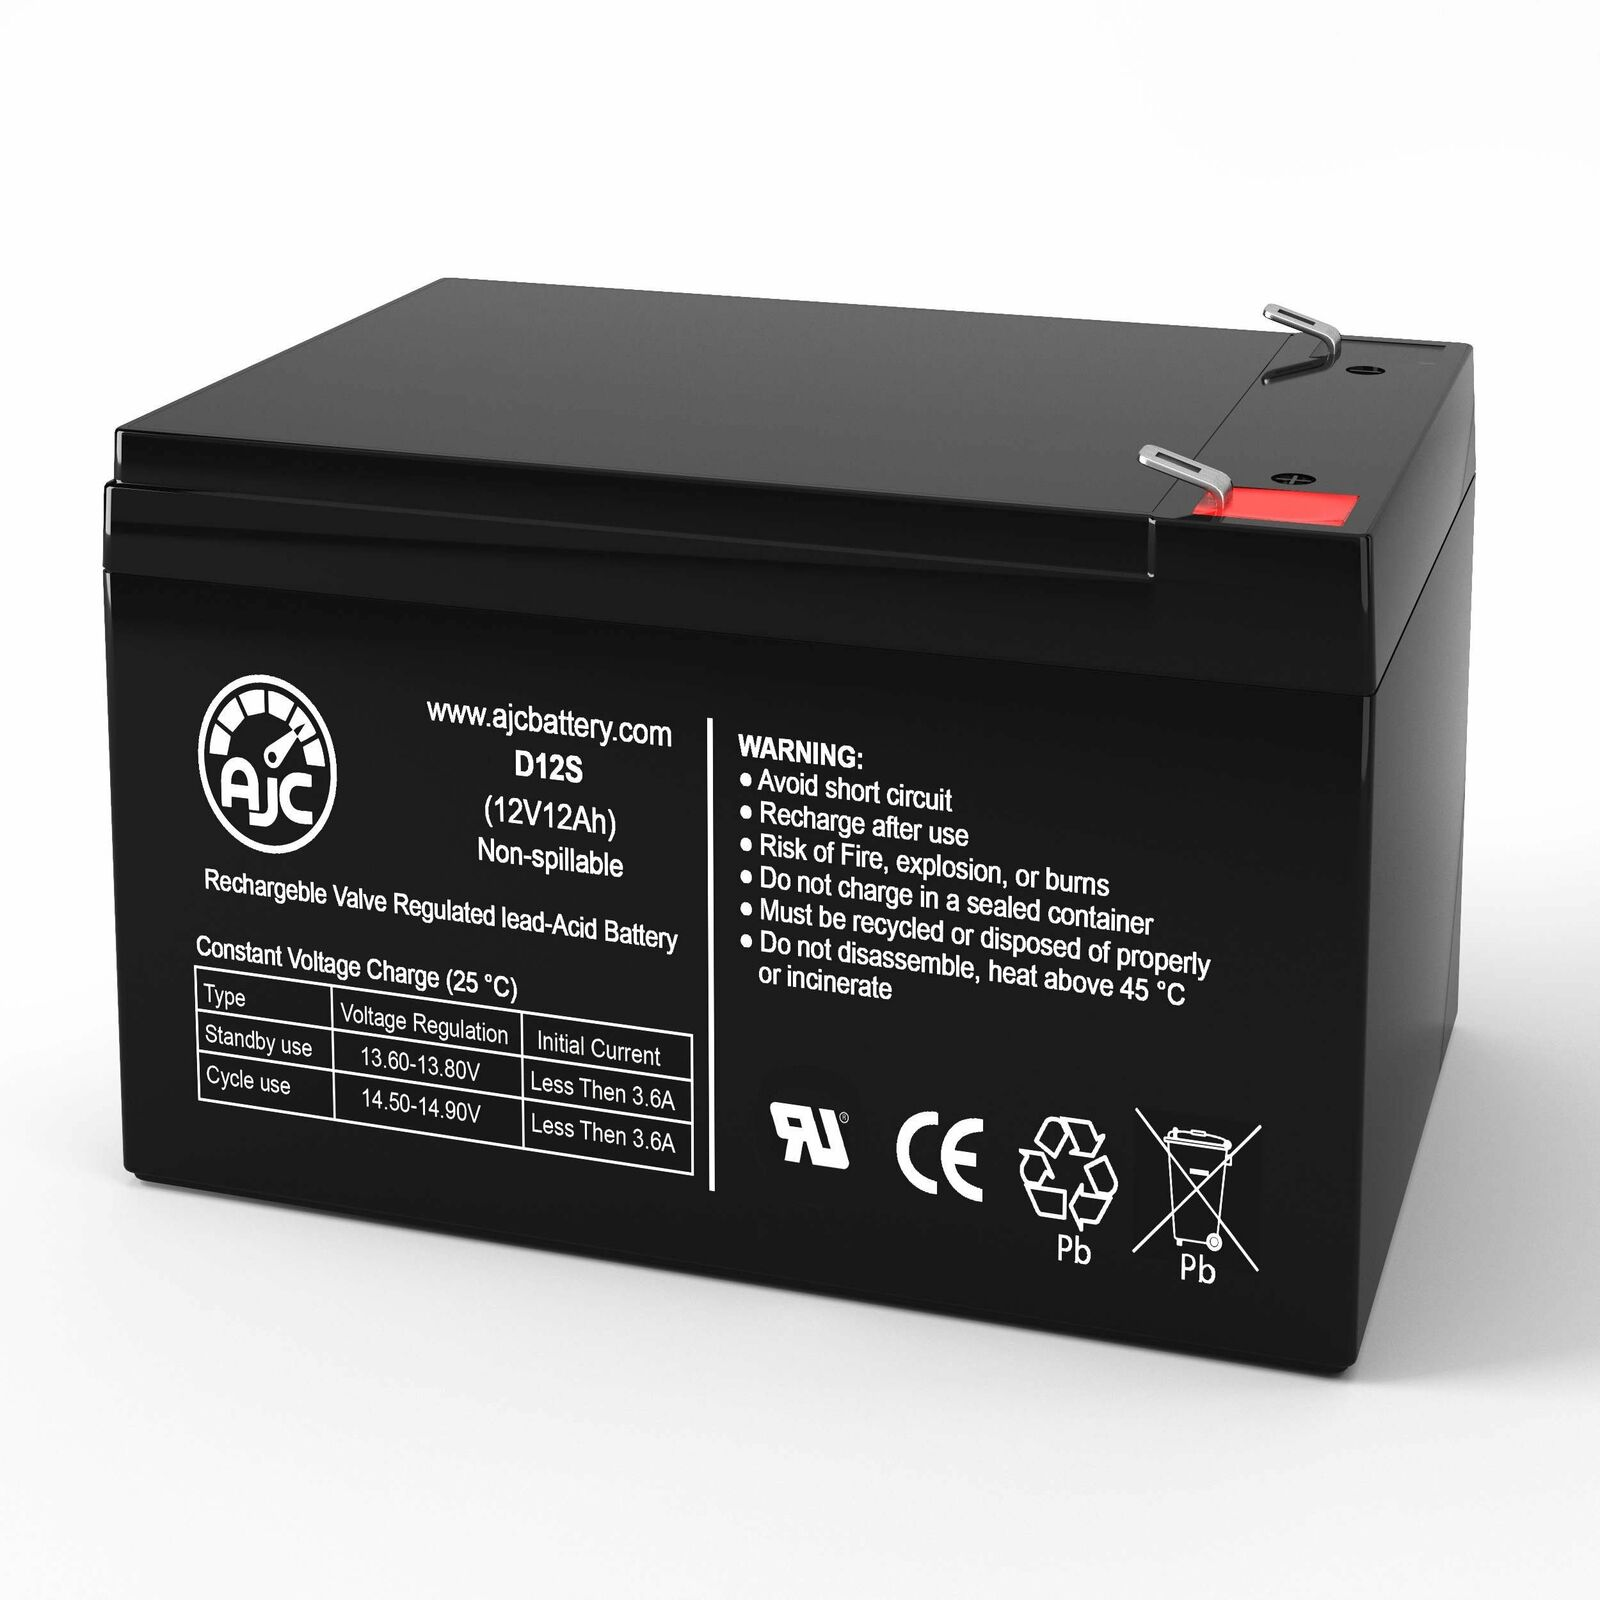 UltraTech UT-12120 12V 12Ah Sealed Lead Acid Replacement Battery